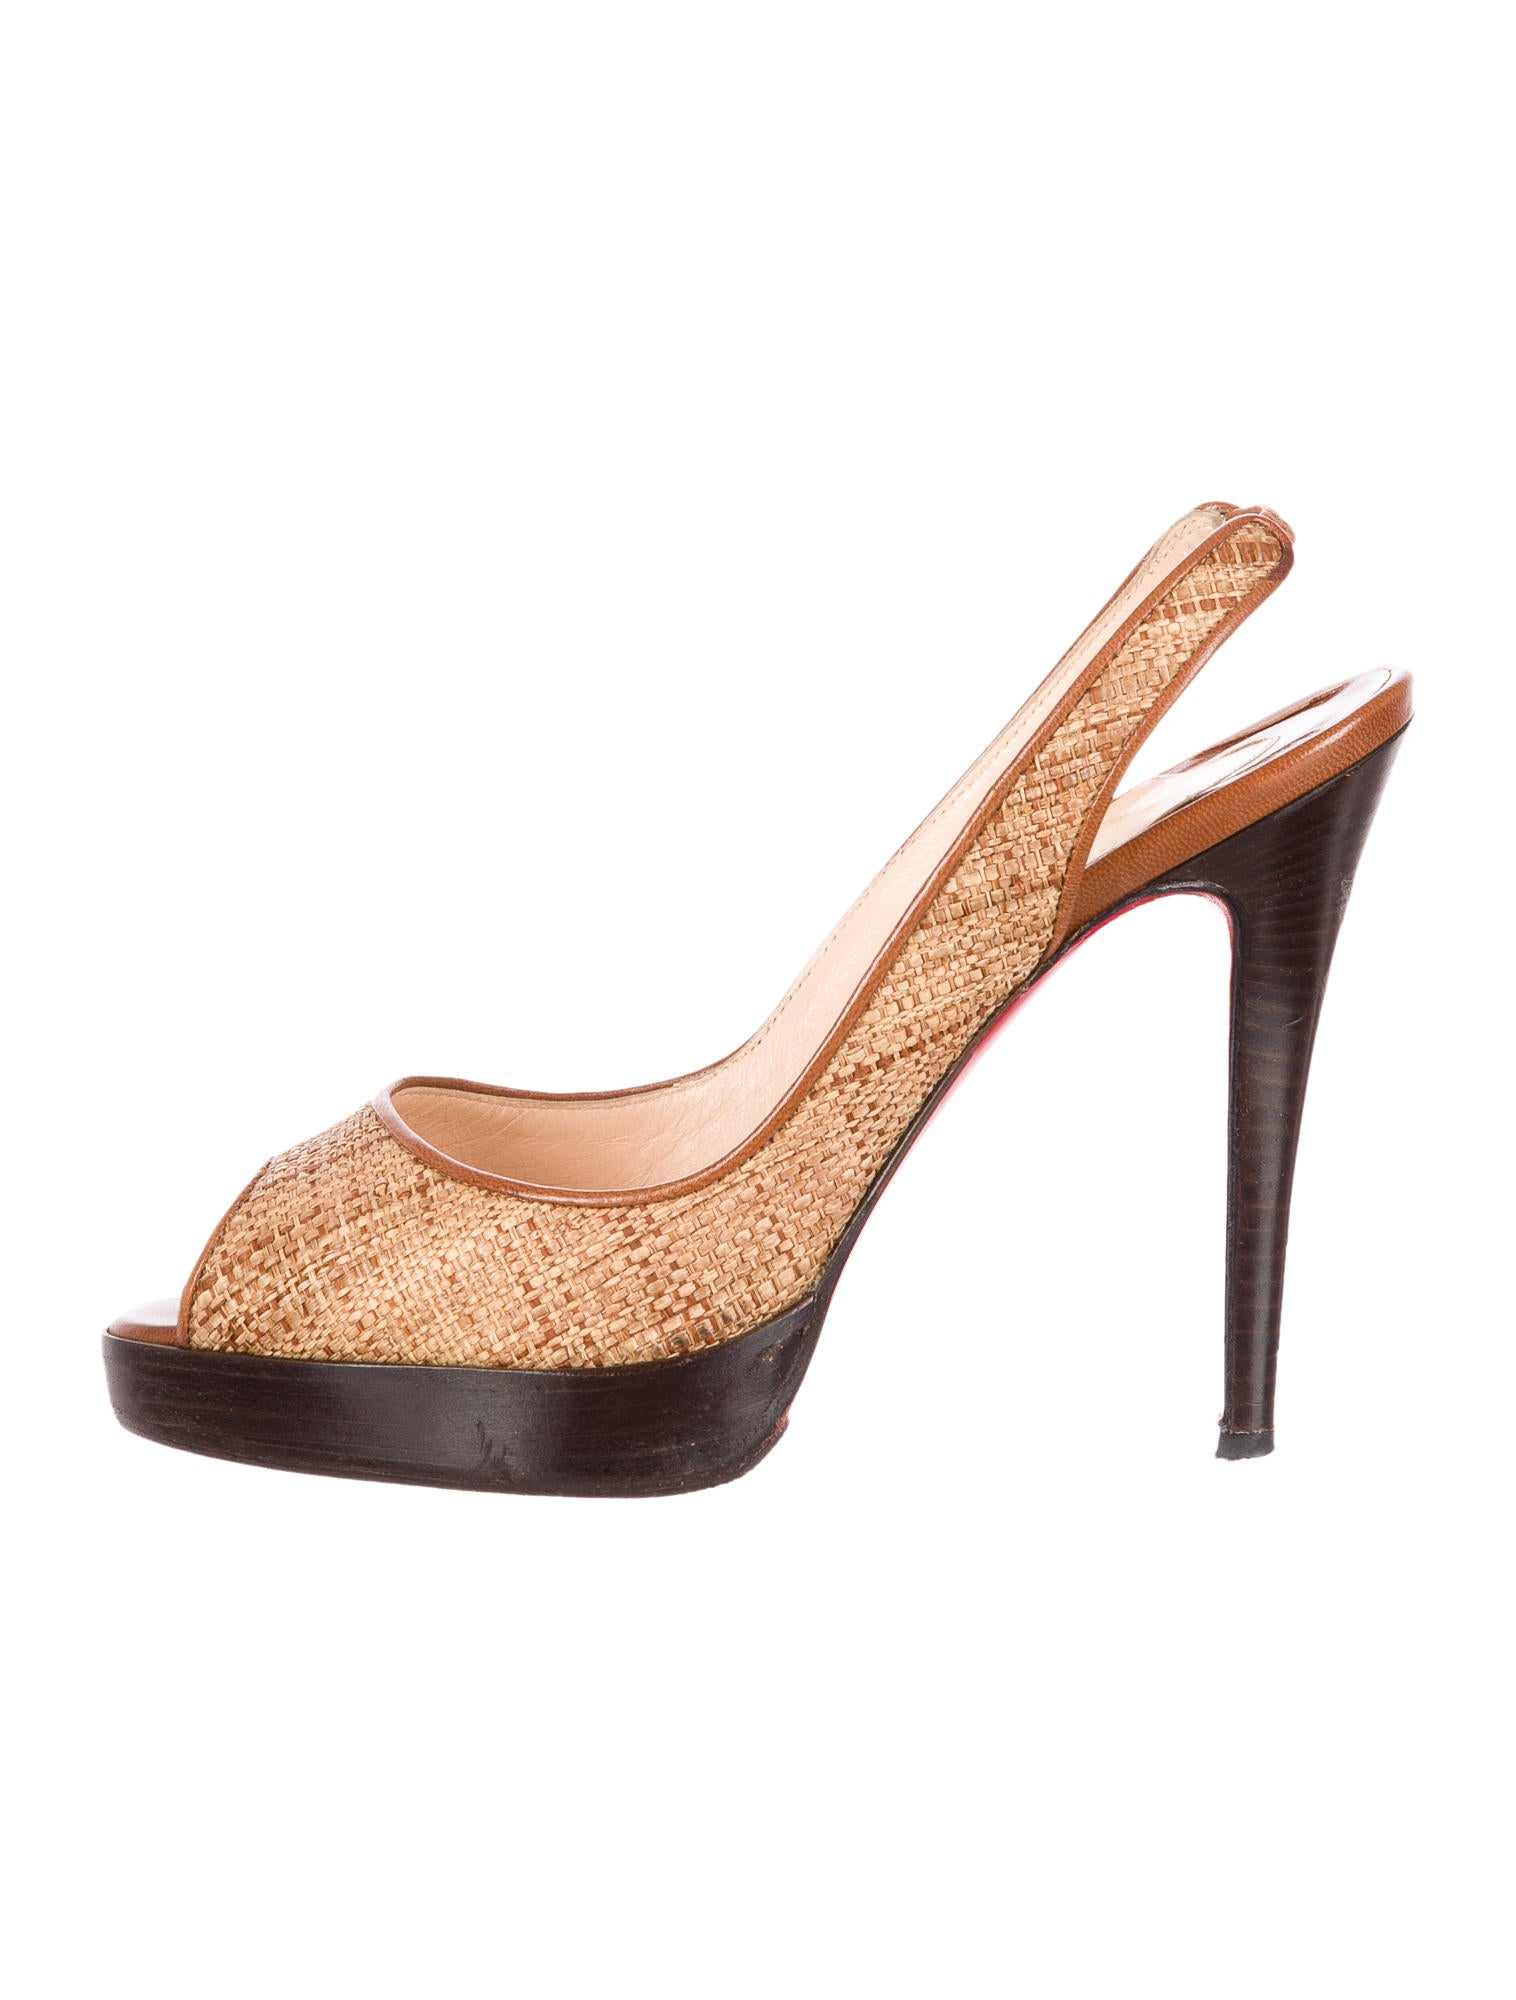 replica shoes christian louboutin - christian louboutin peep-toe slingback sandals Brown straw elastic ...